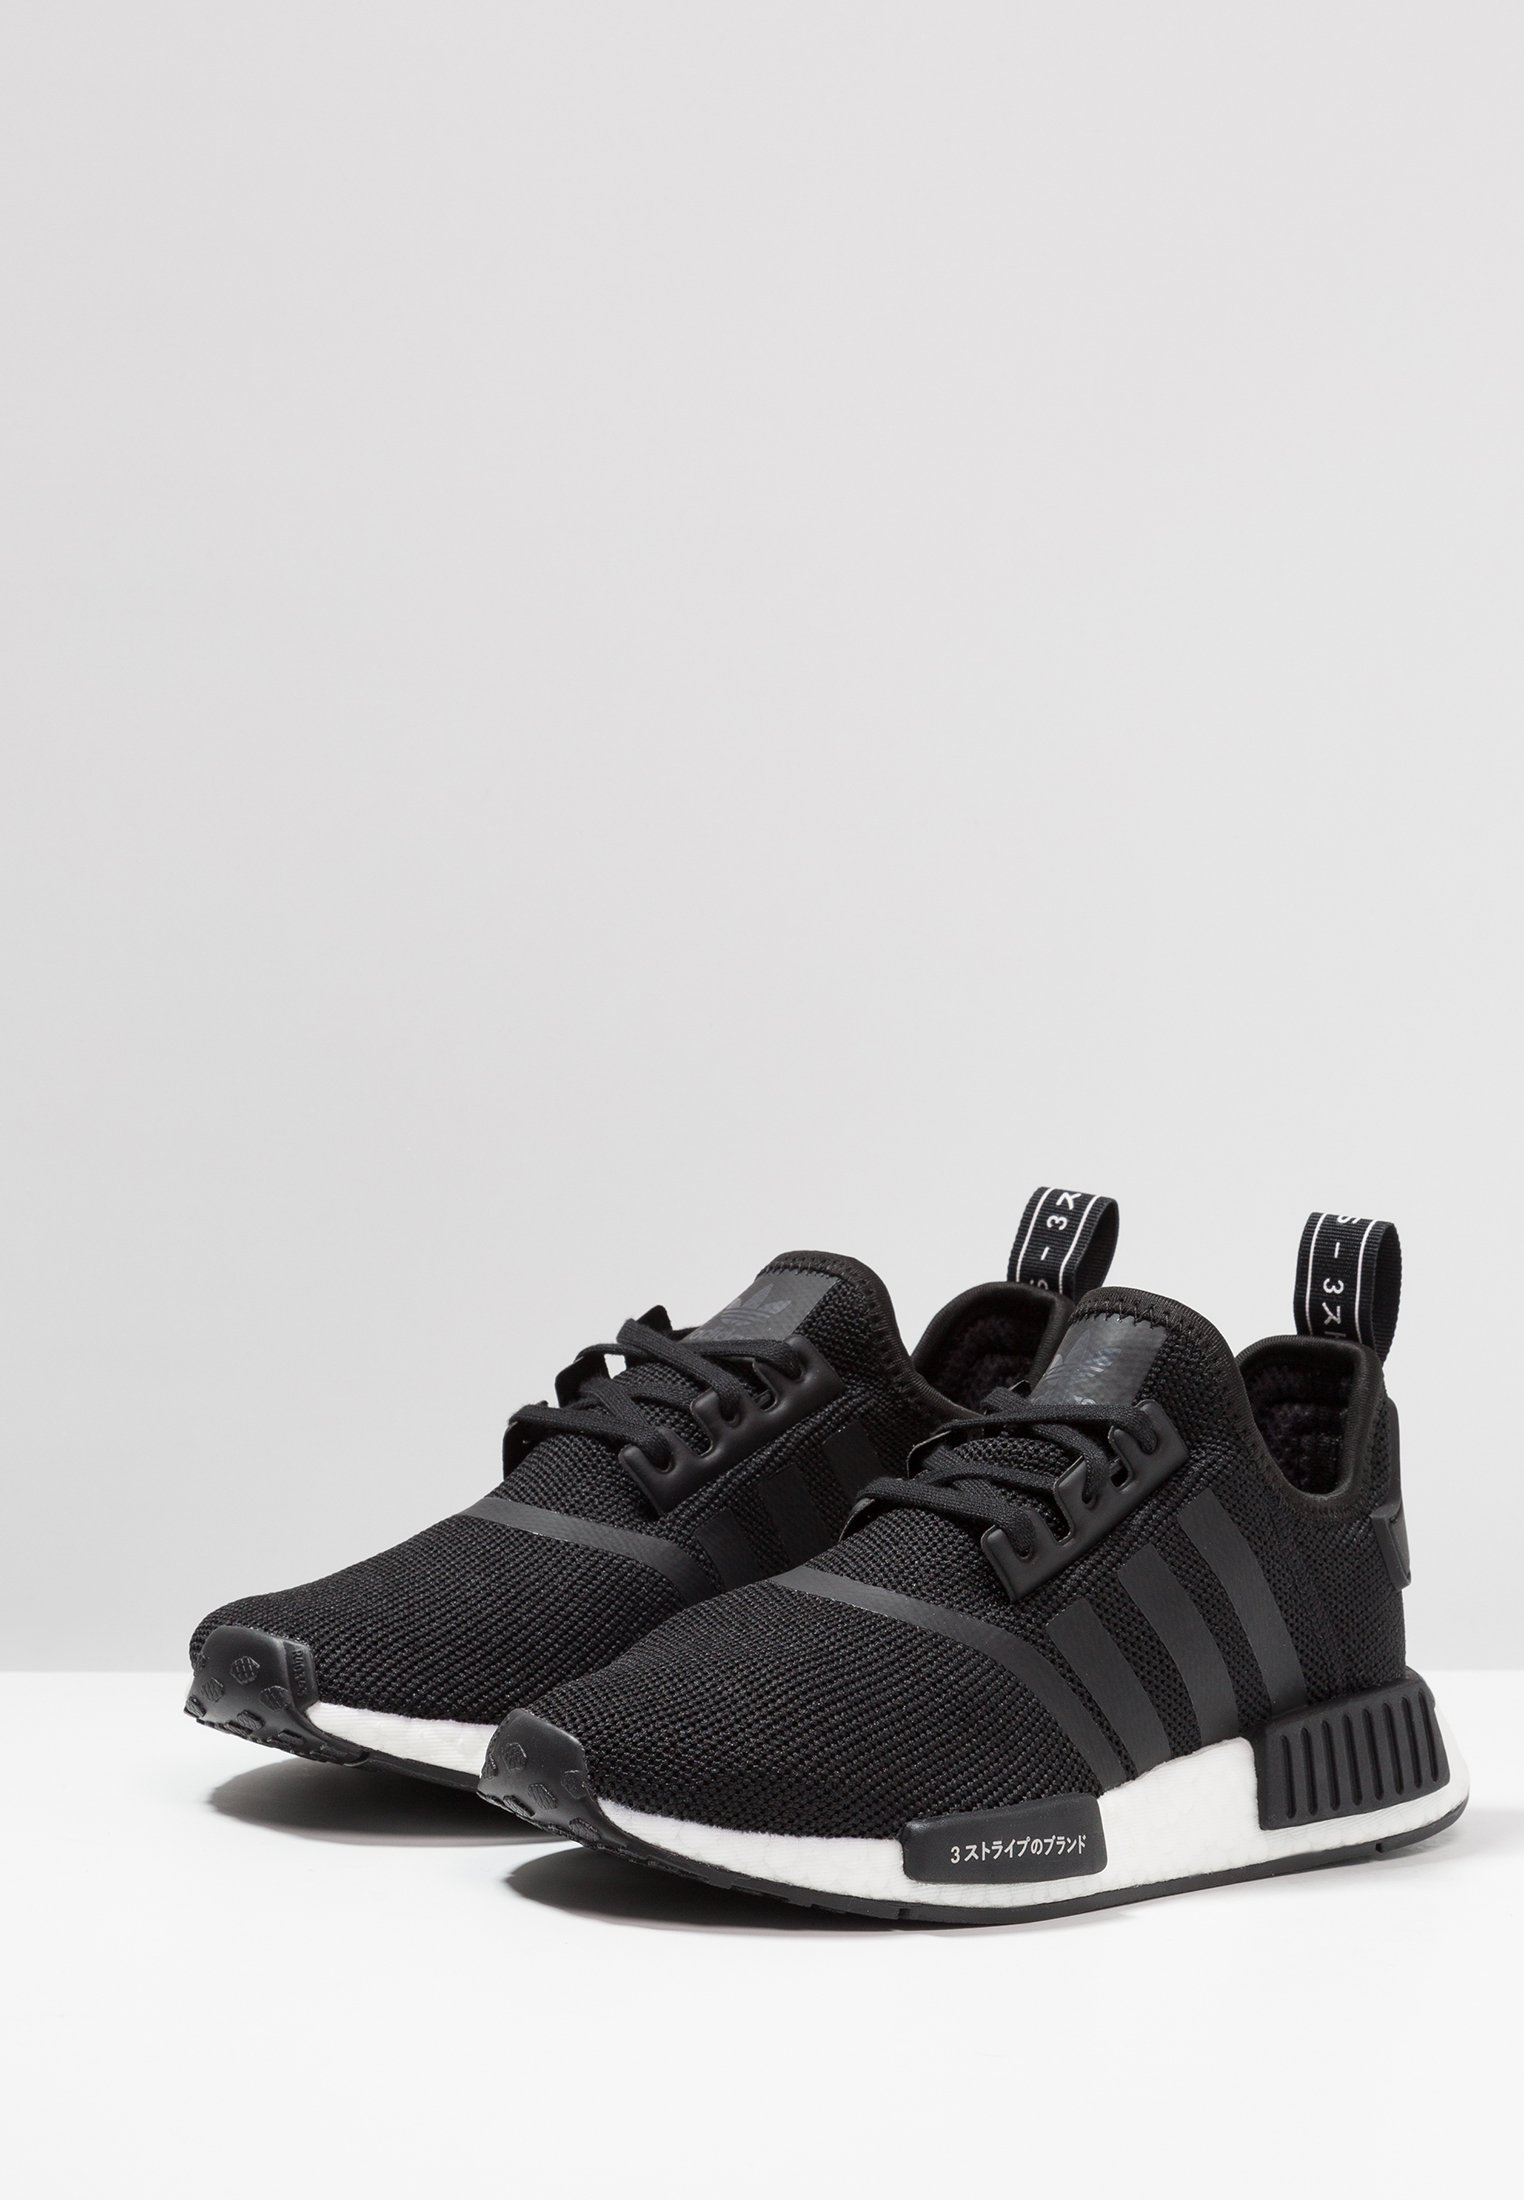 NMD_R1 Sneakers core blackorchid tint